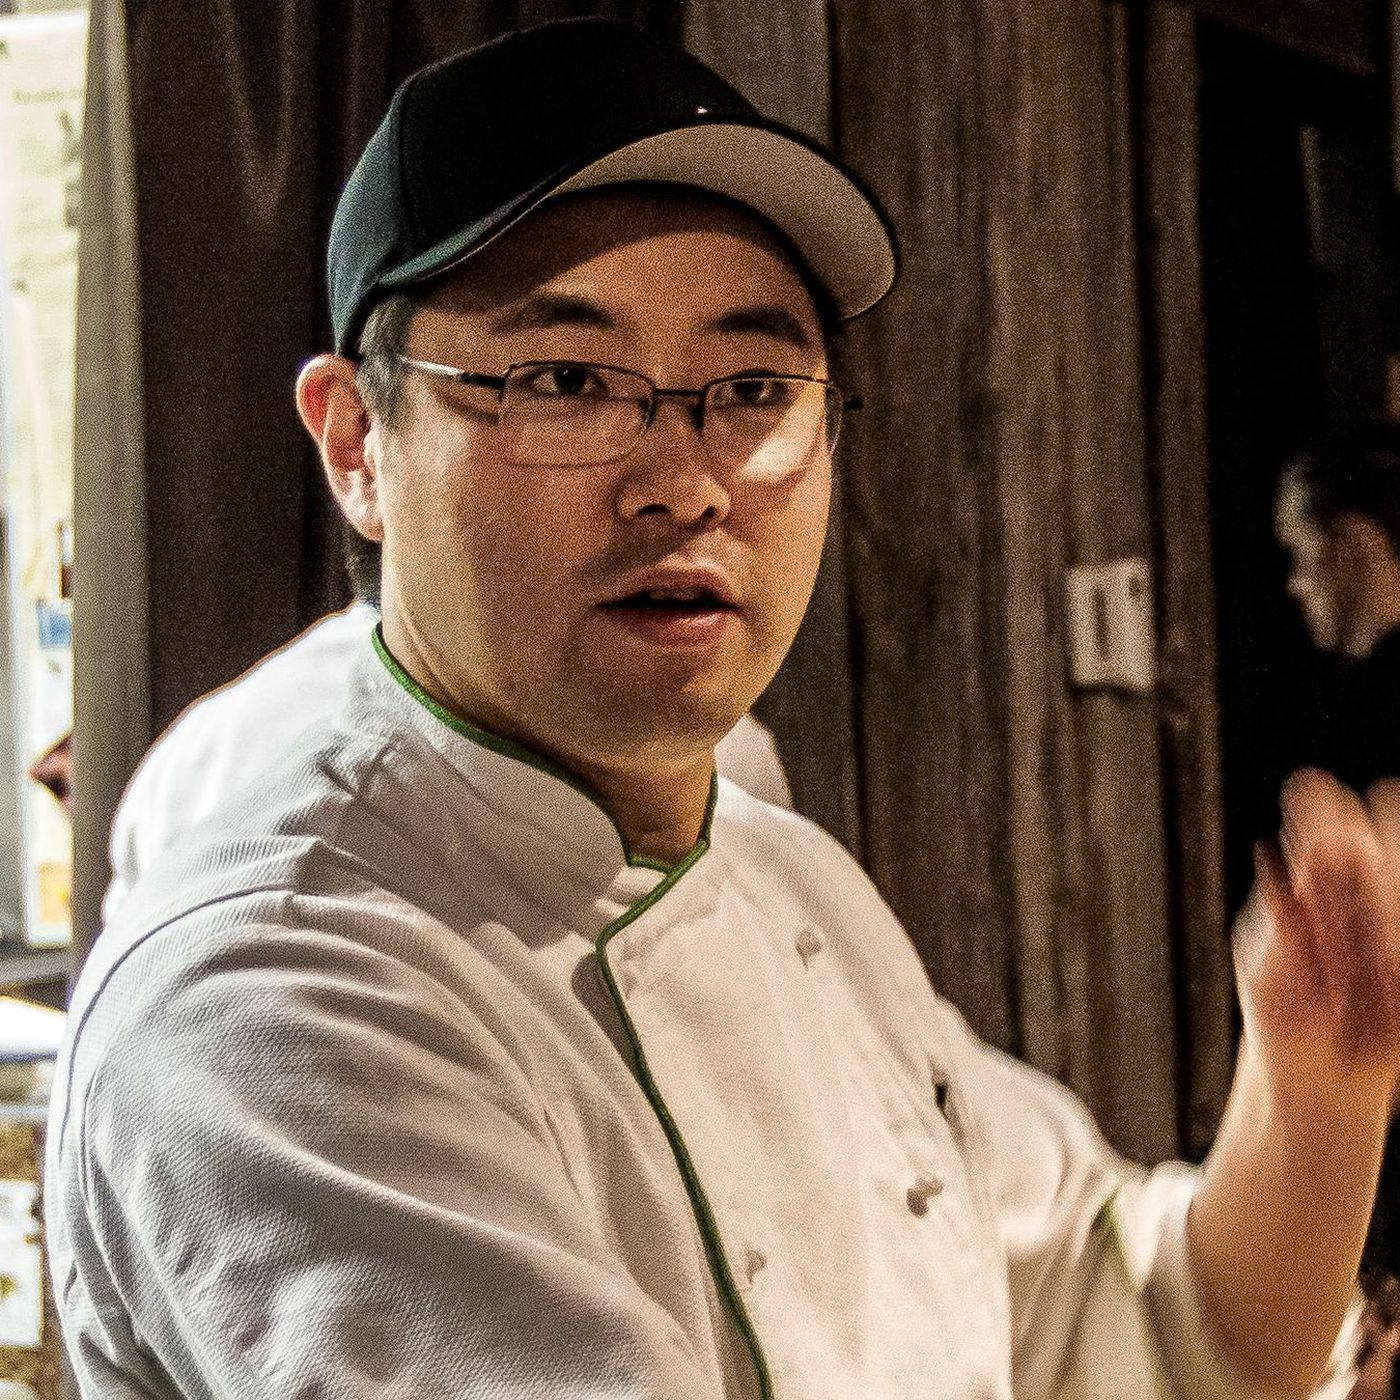 Antonio Park Just Became the First Chef in Canada With a